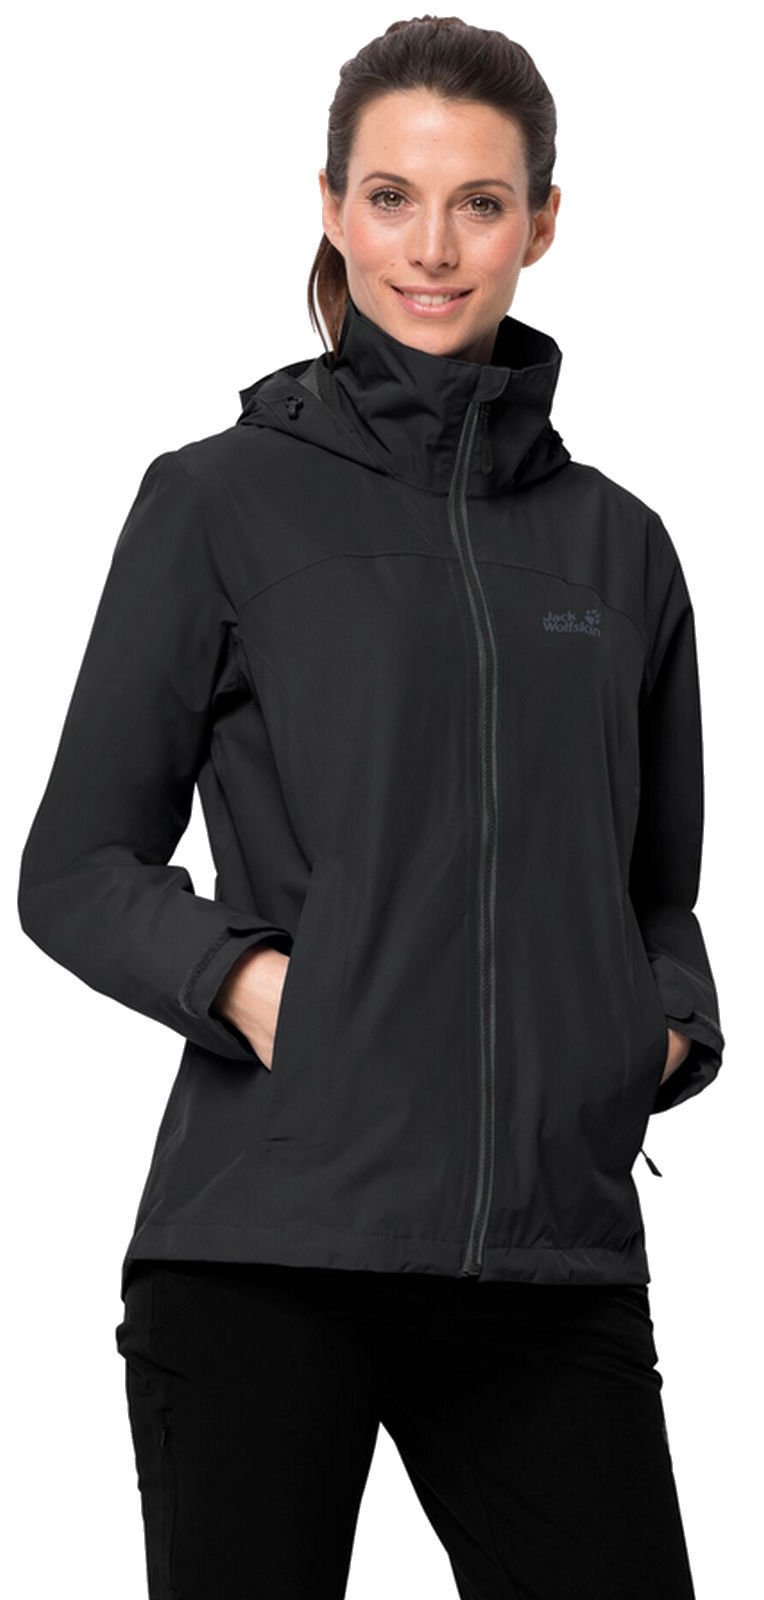 Freizeit Wander Jack Outdoor Details Black Wolfskin Ladies Women Evandale Jacket Jacke About 7gvYby6f